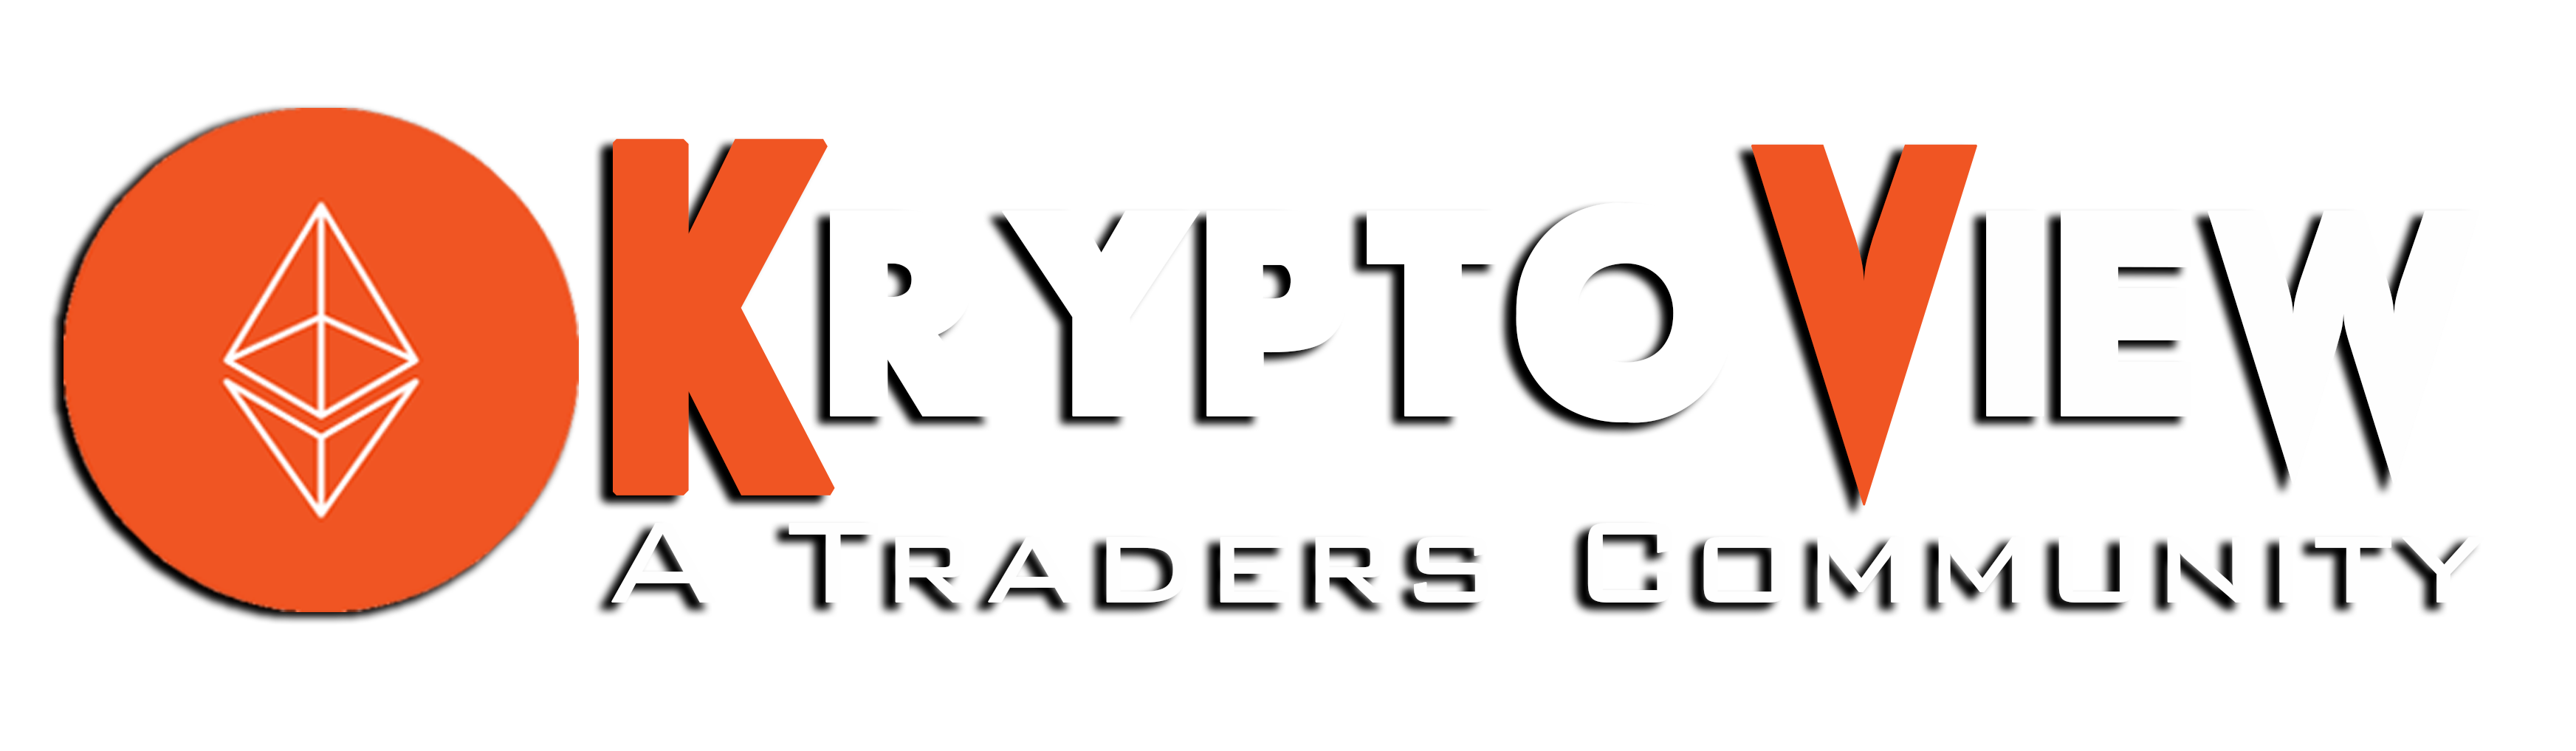 KryptoView Crypto Live Trading Project